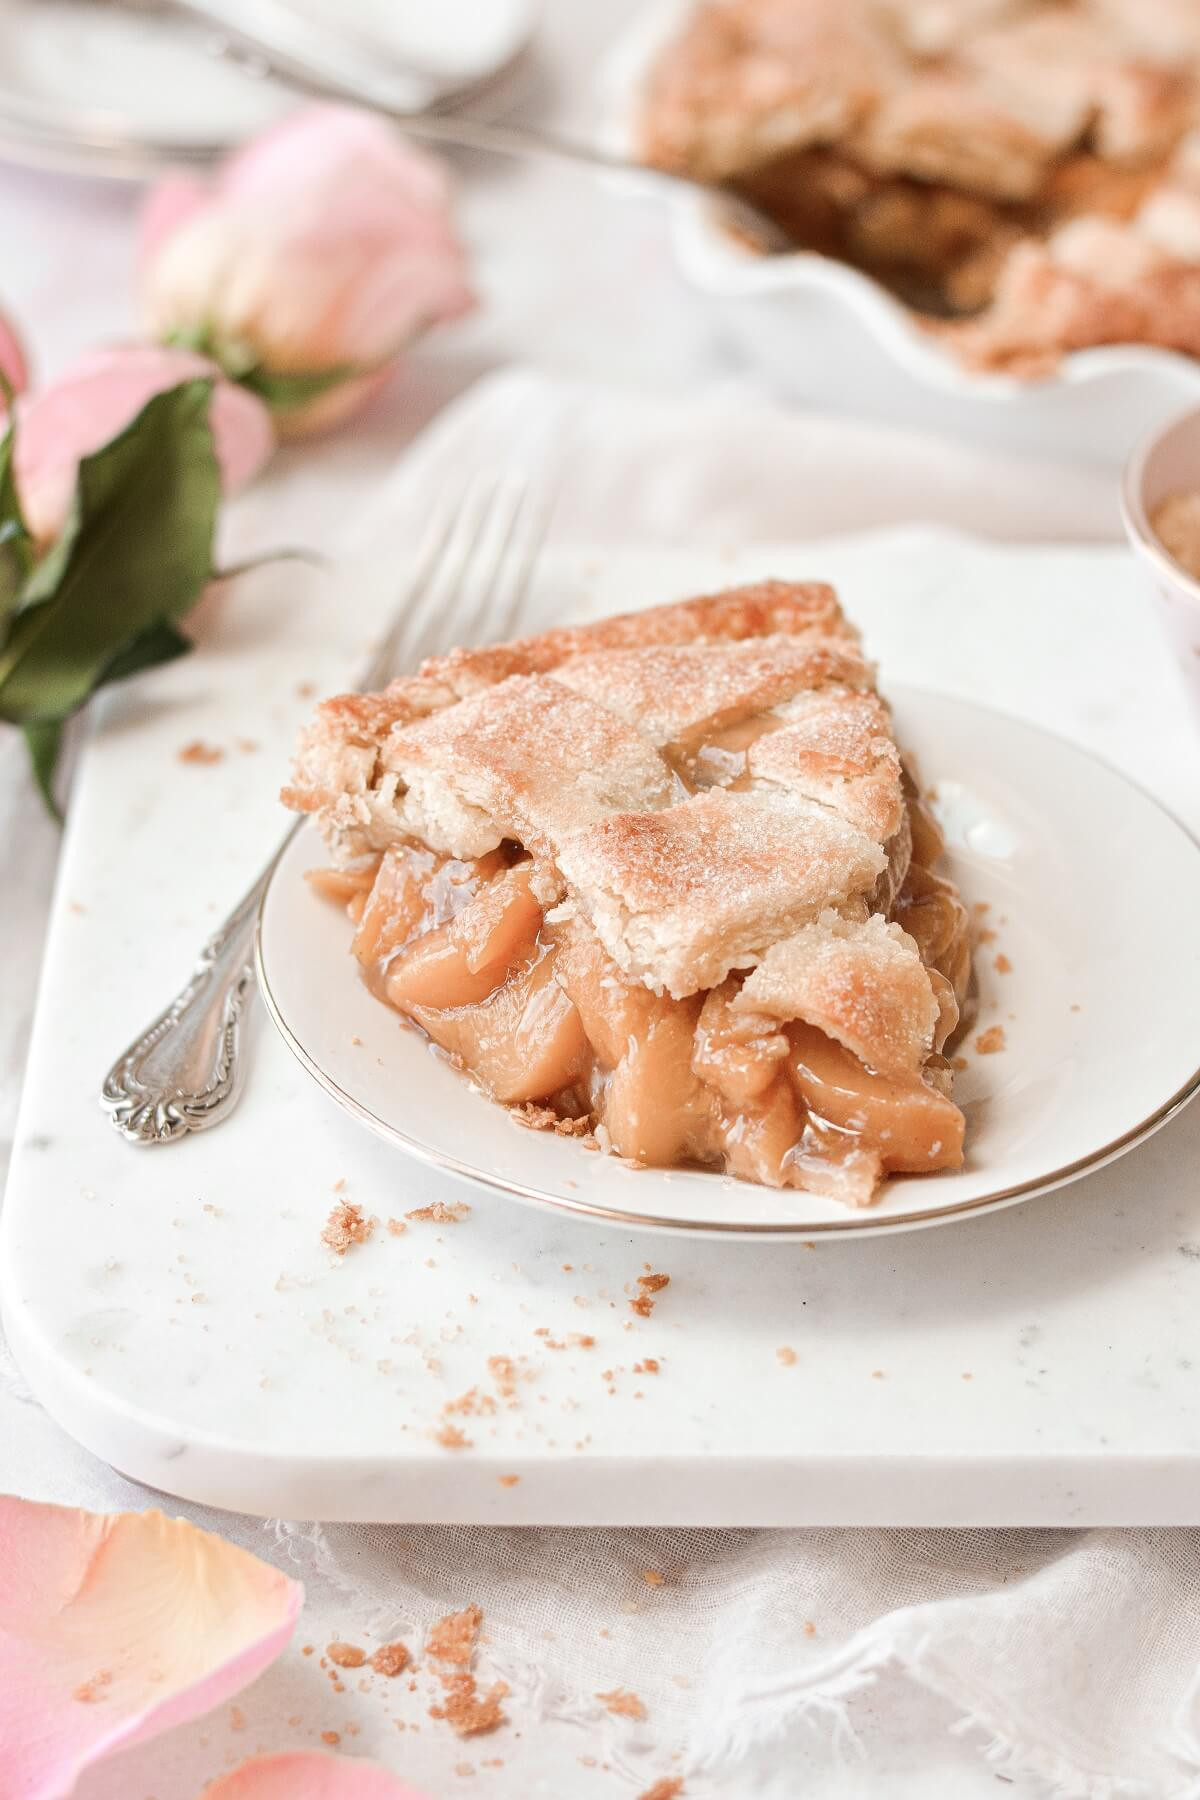 A slice of peach pie on a white marble serving board.